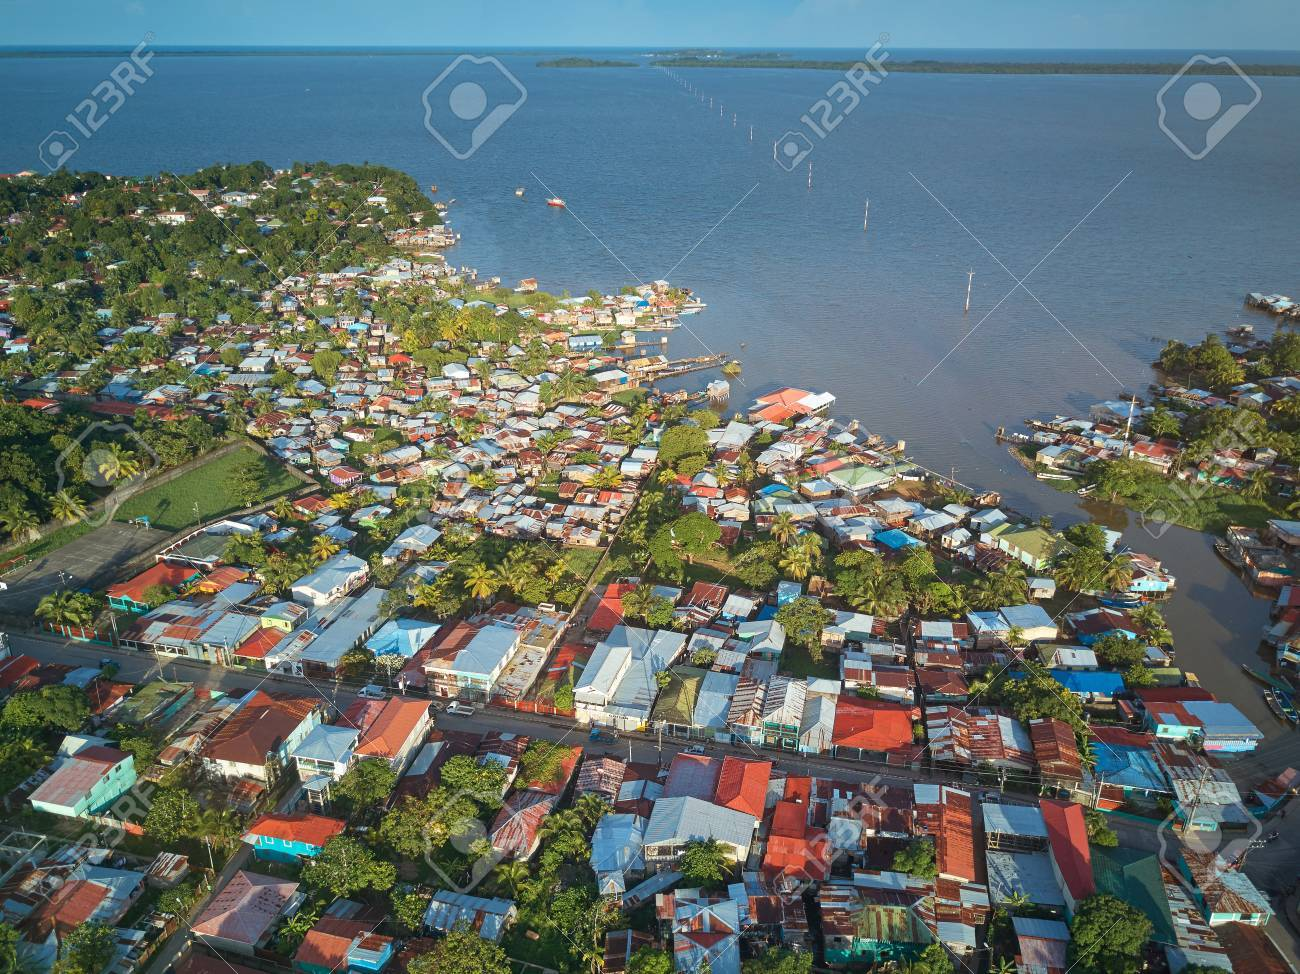 Port In Bluefields Nicaragua Aerial Drone View Stock Photo ...